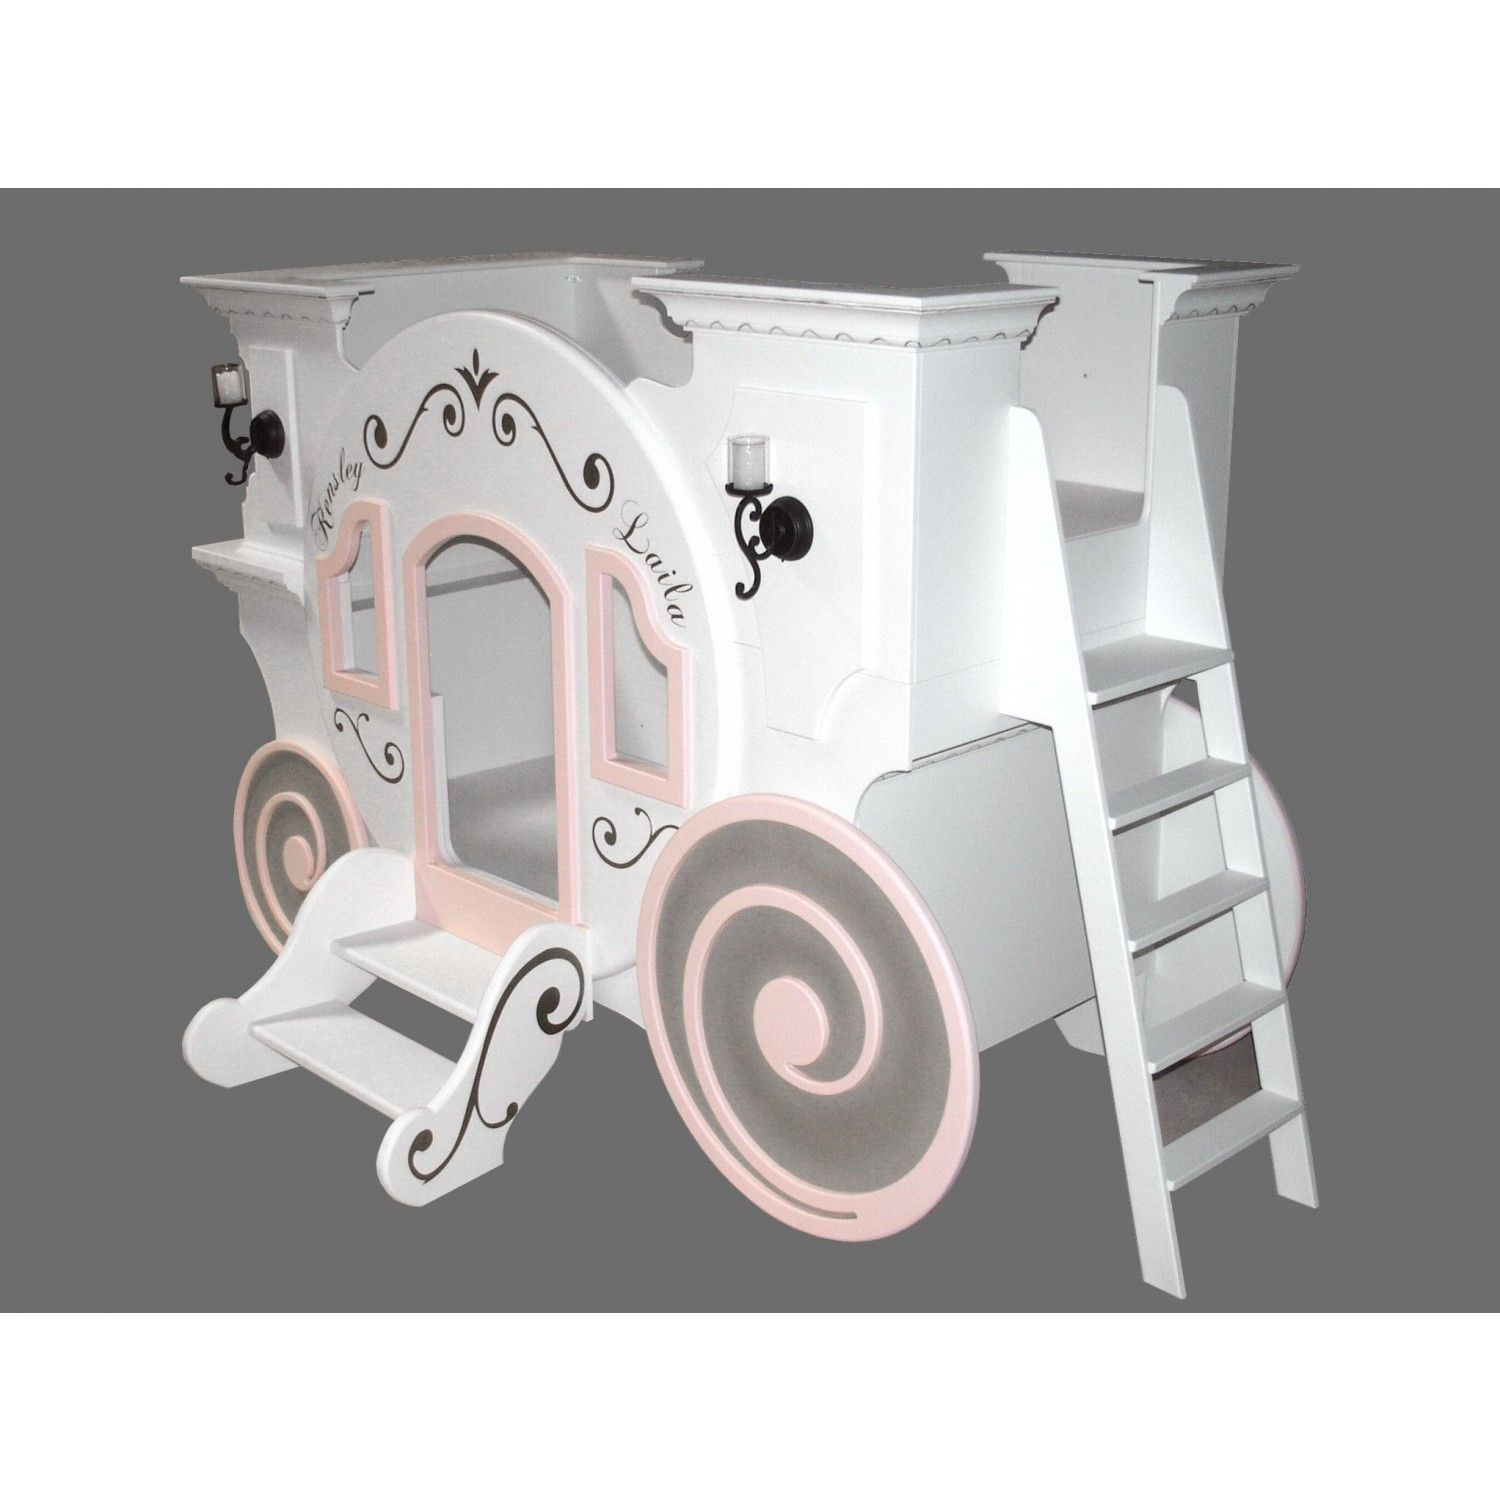 Blueprints For The Cinderella Princess Carriage Bunk Bed With Loft